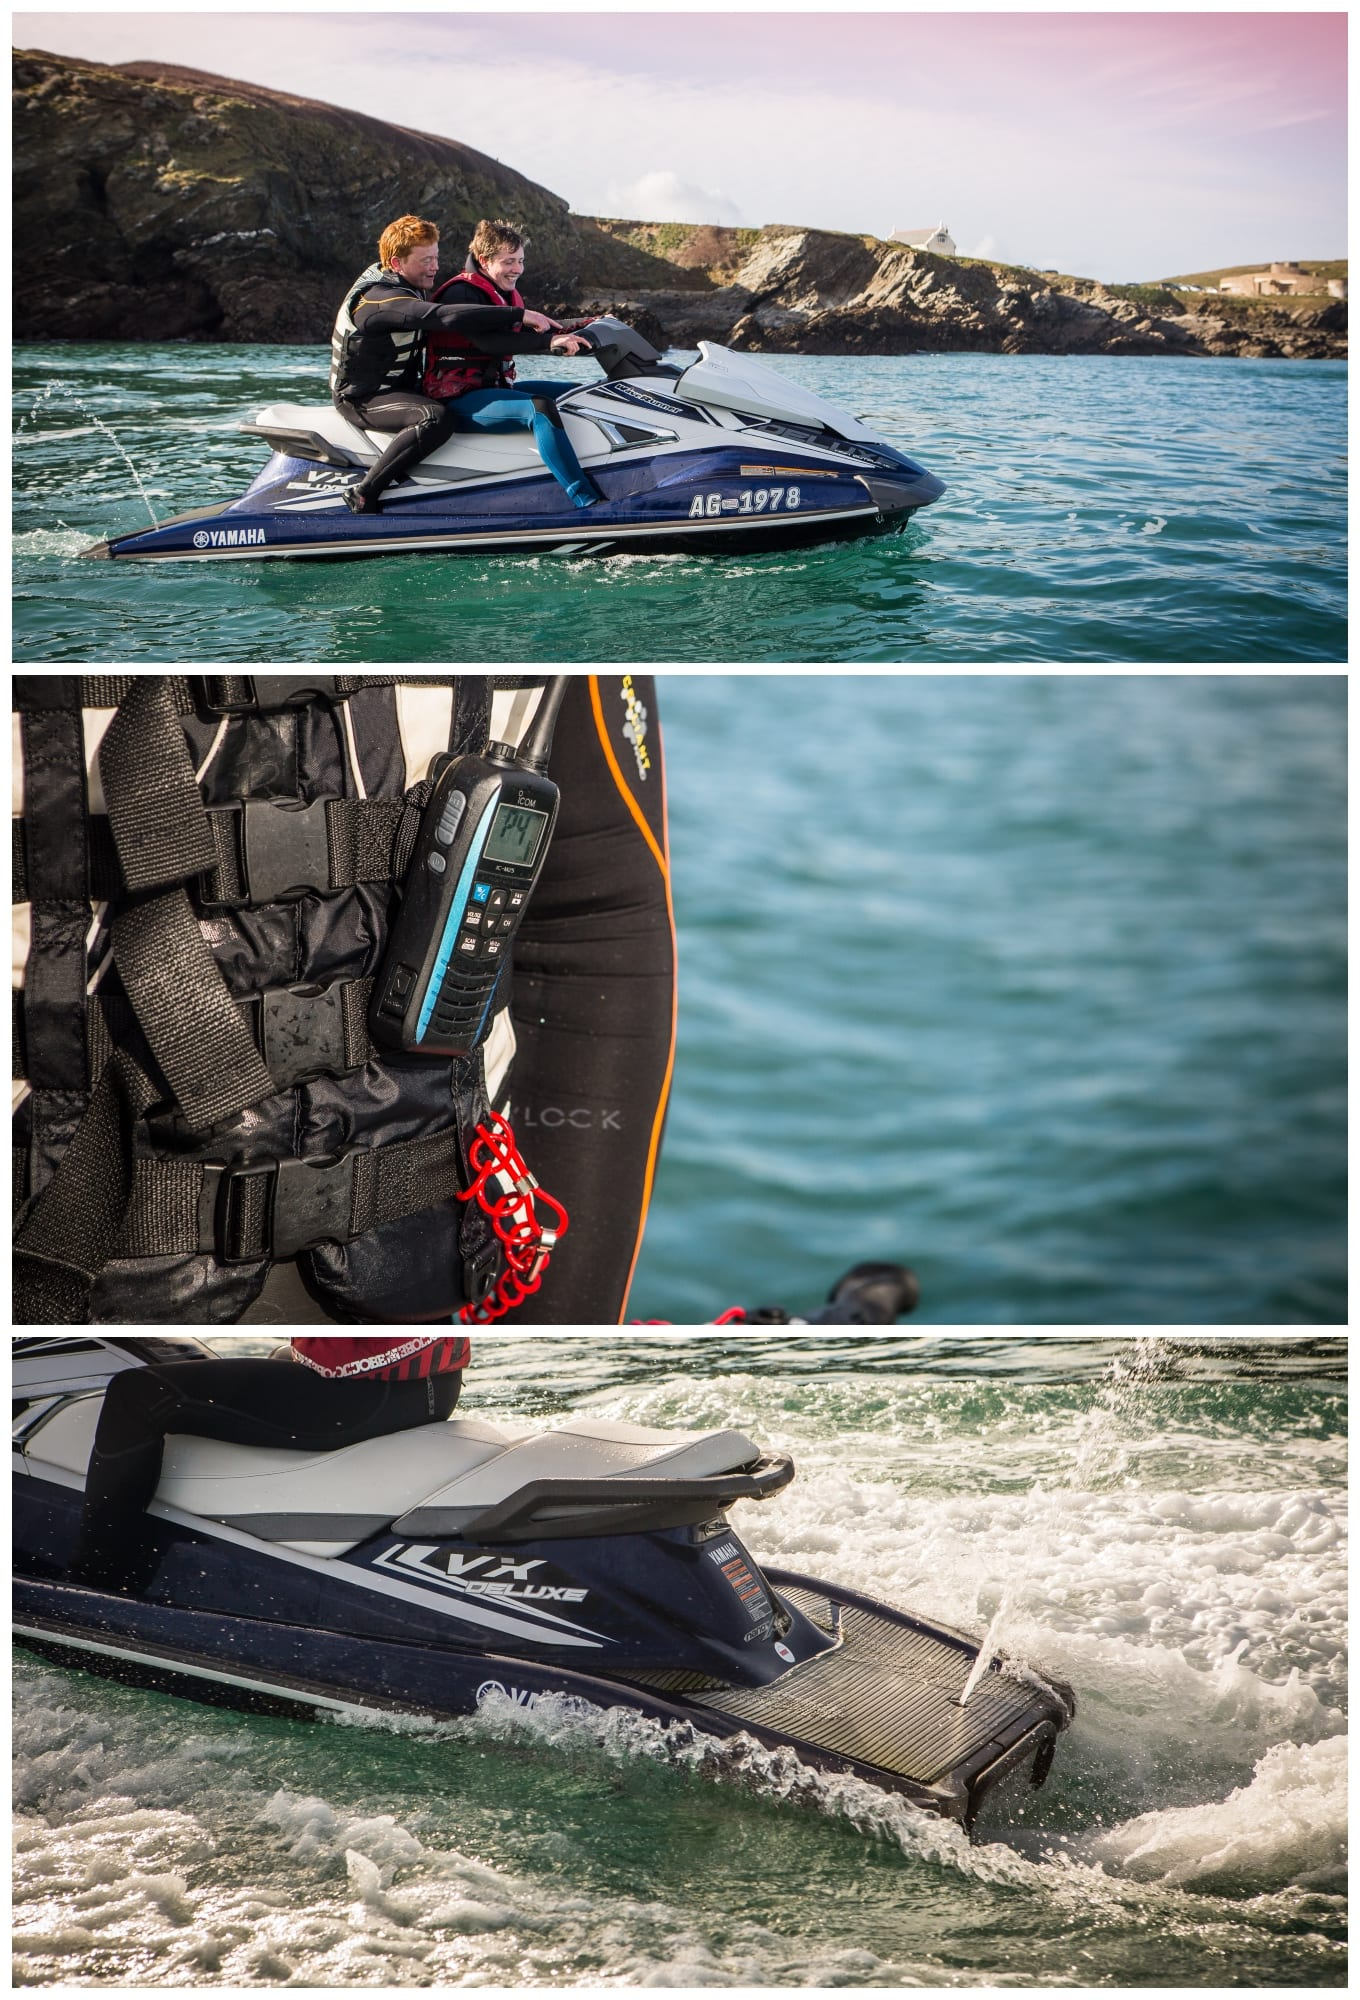 RYA Personal Watercraft Courses in Cornwall